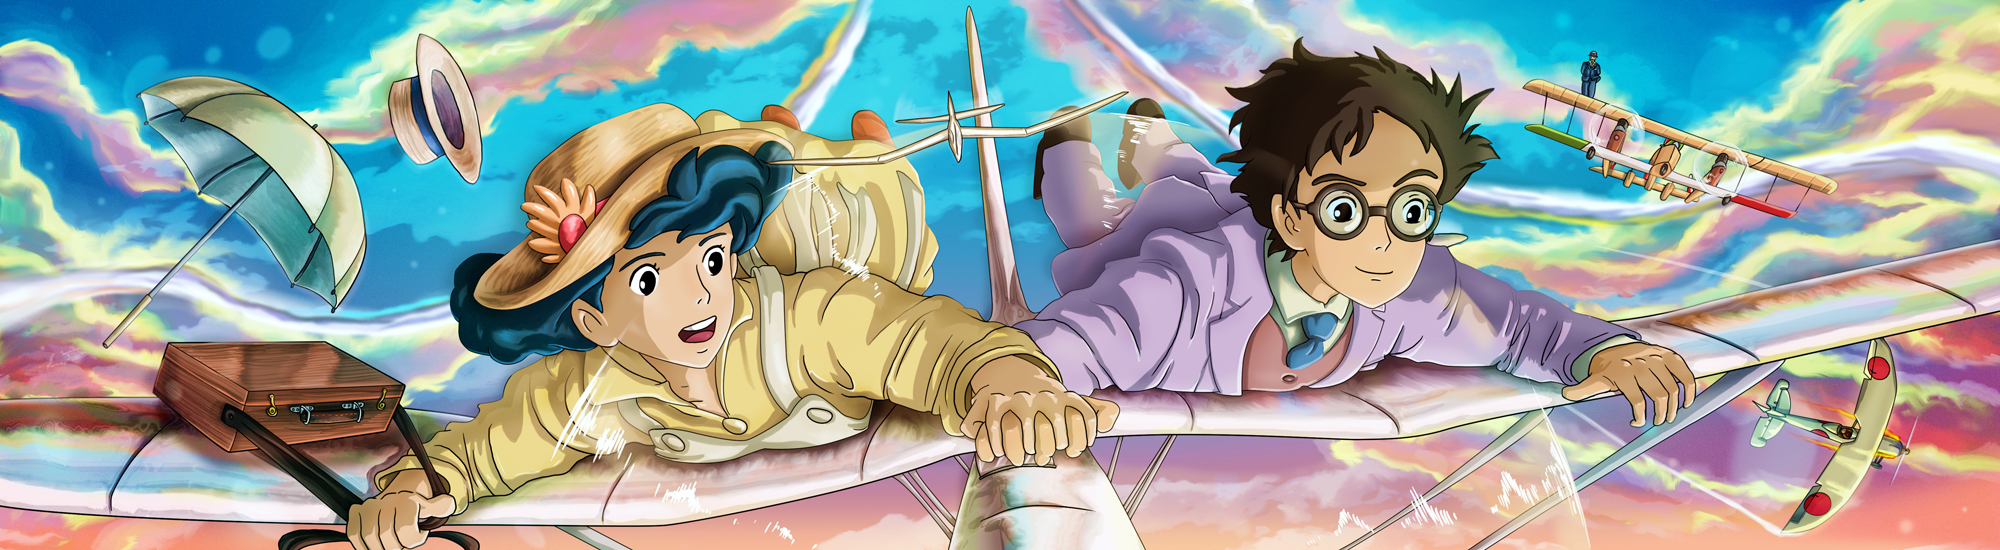 The Wind Rises Entry By Wonderwig